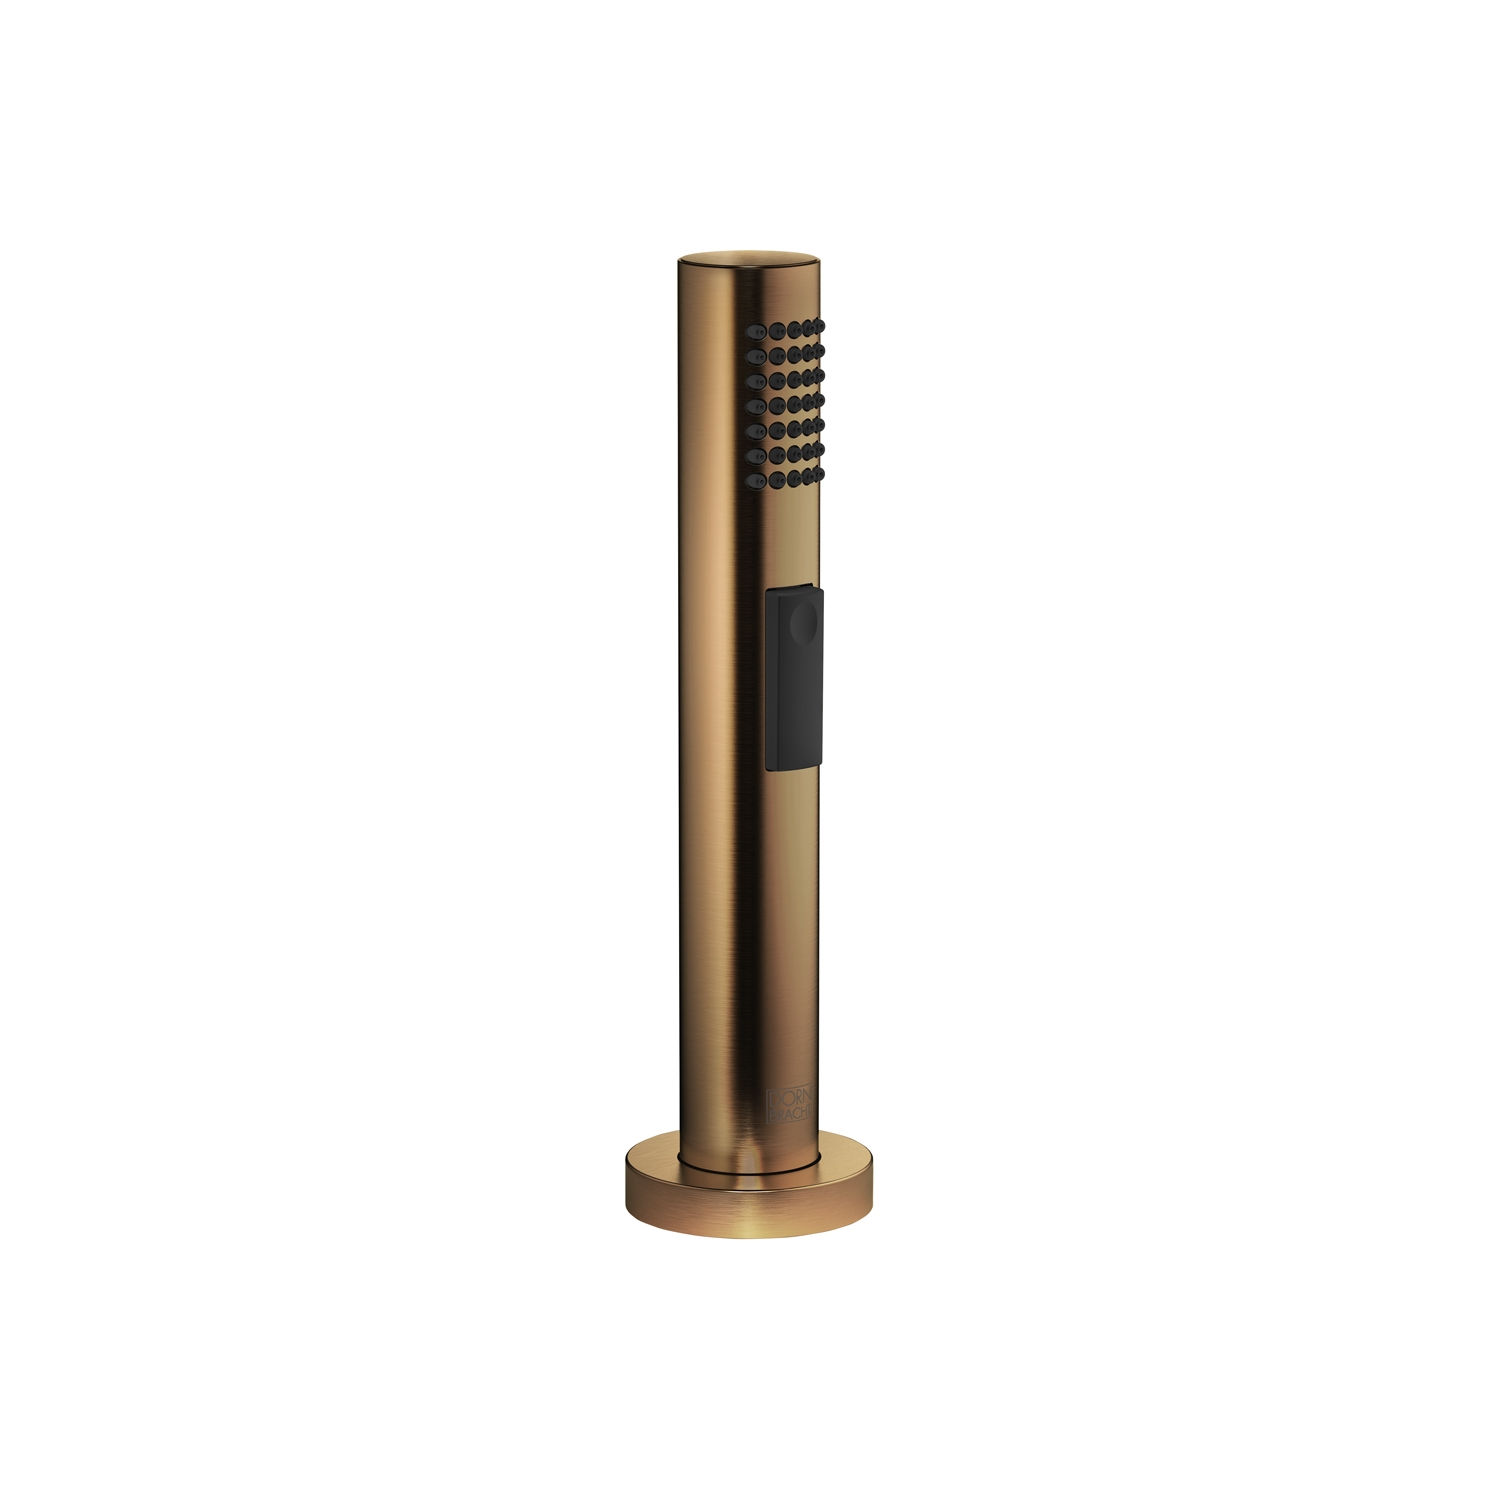 Dornbracht 27721970-16 Round Universal Side Spray Set - Dark Brass Matte